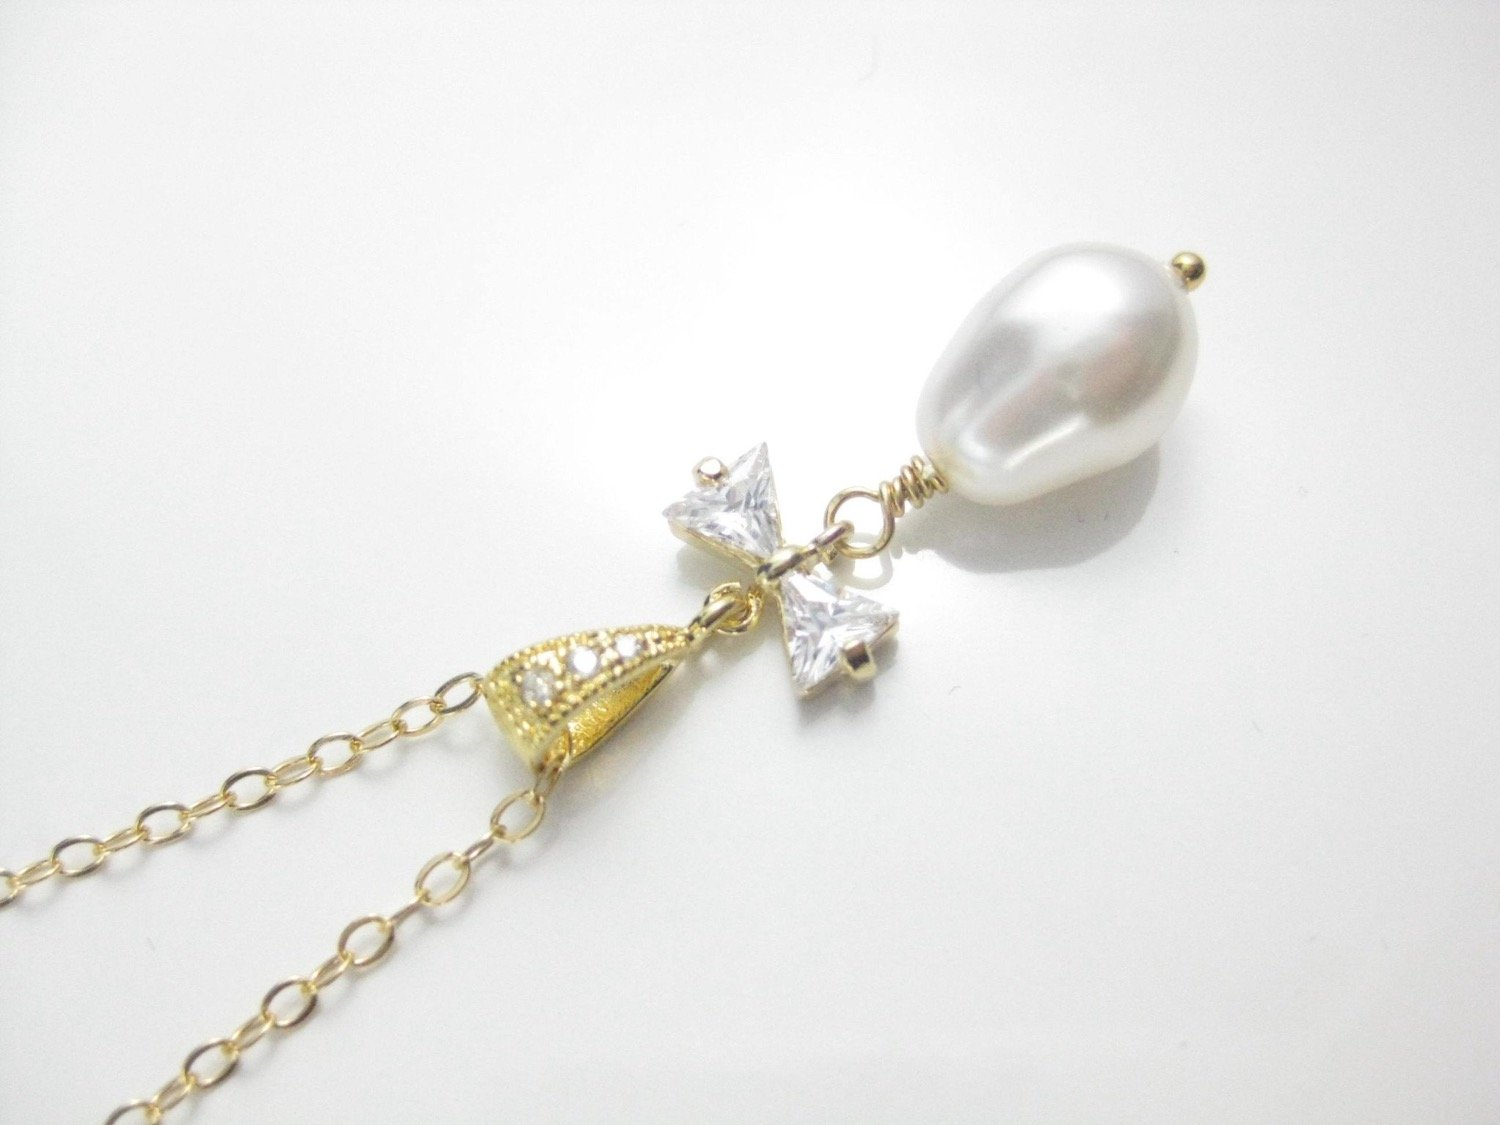 Bridal Jewelry White Pearl and Gold Necklace with Pearl Pendant - Clairesbridal - 2